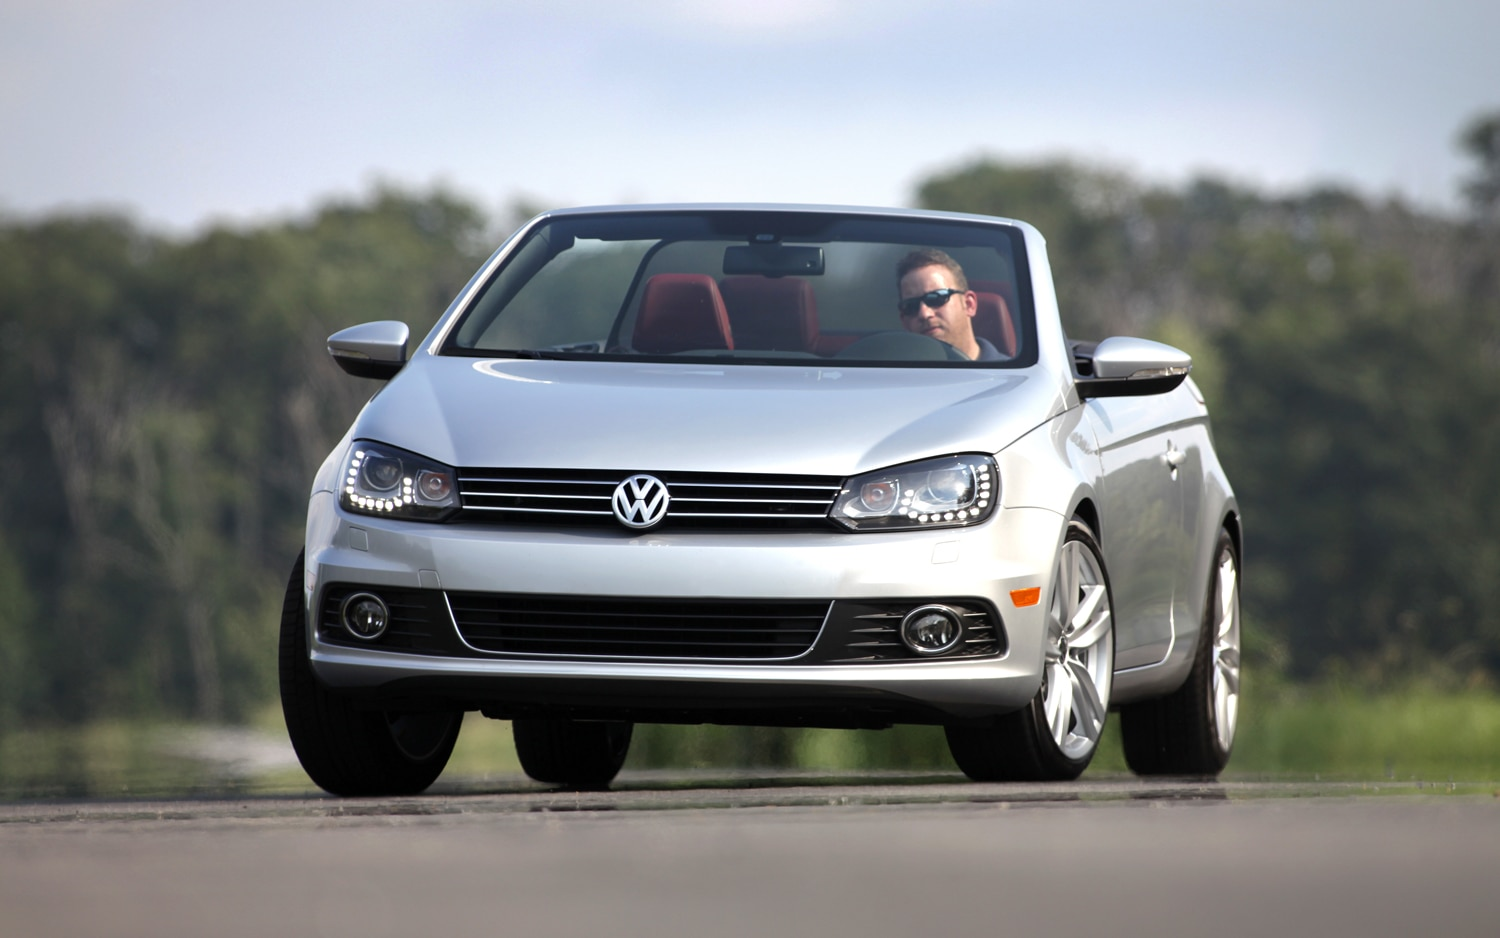 2013 VW Eos Front View Action1